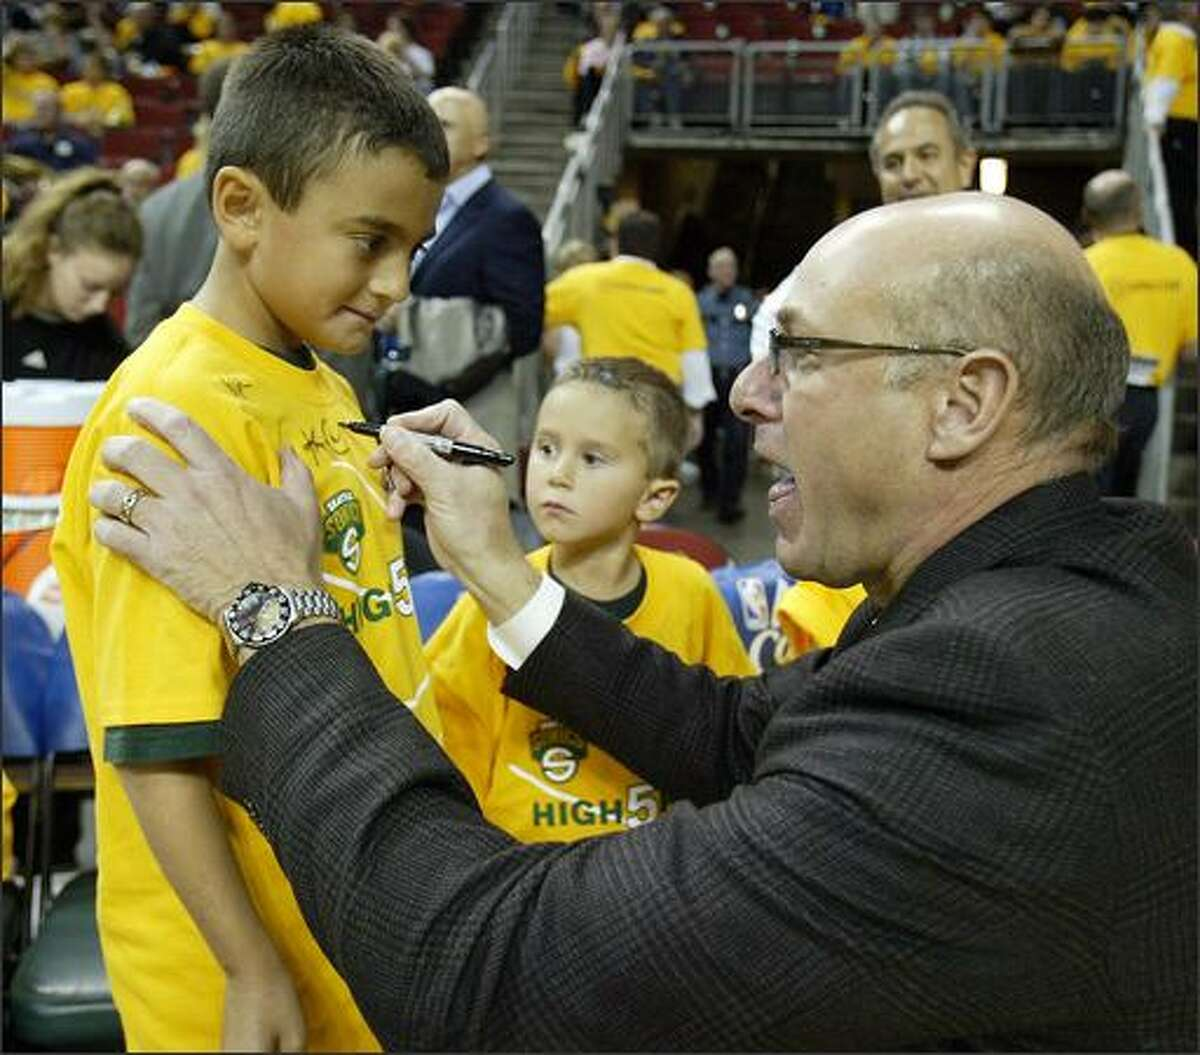 Kevin Calabro, autographing 8-year-old Robby Proano's shirt during a November game at KeyArena, was the voice of the Sonics since 1987.